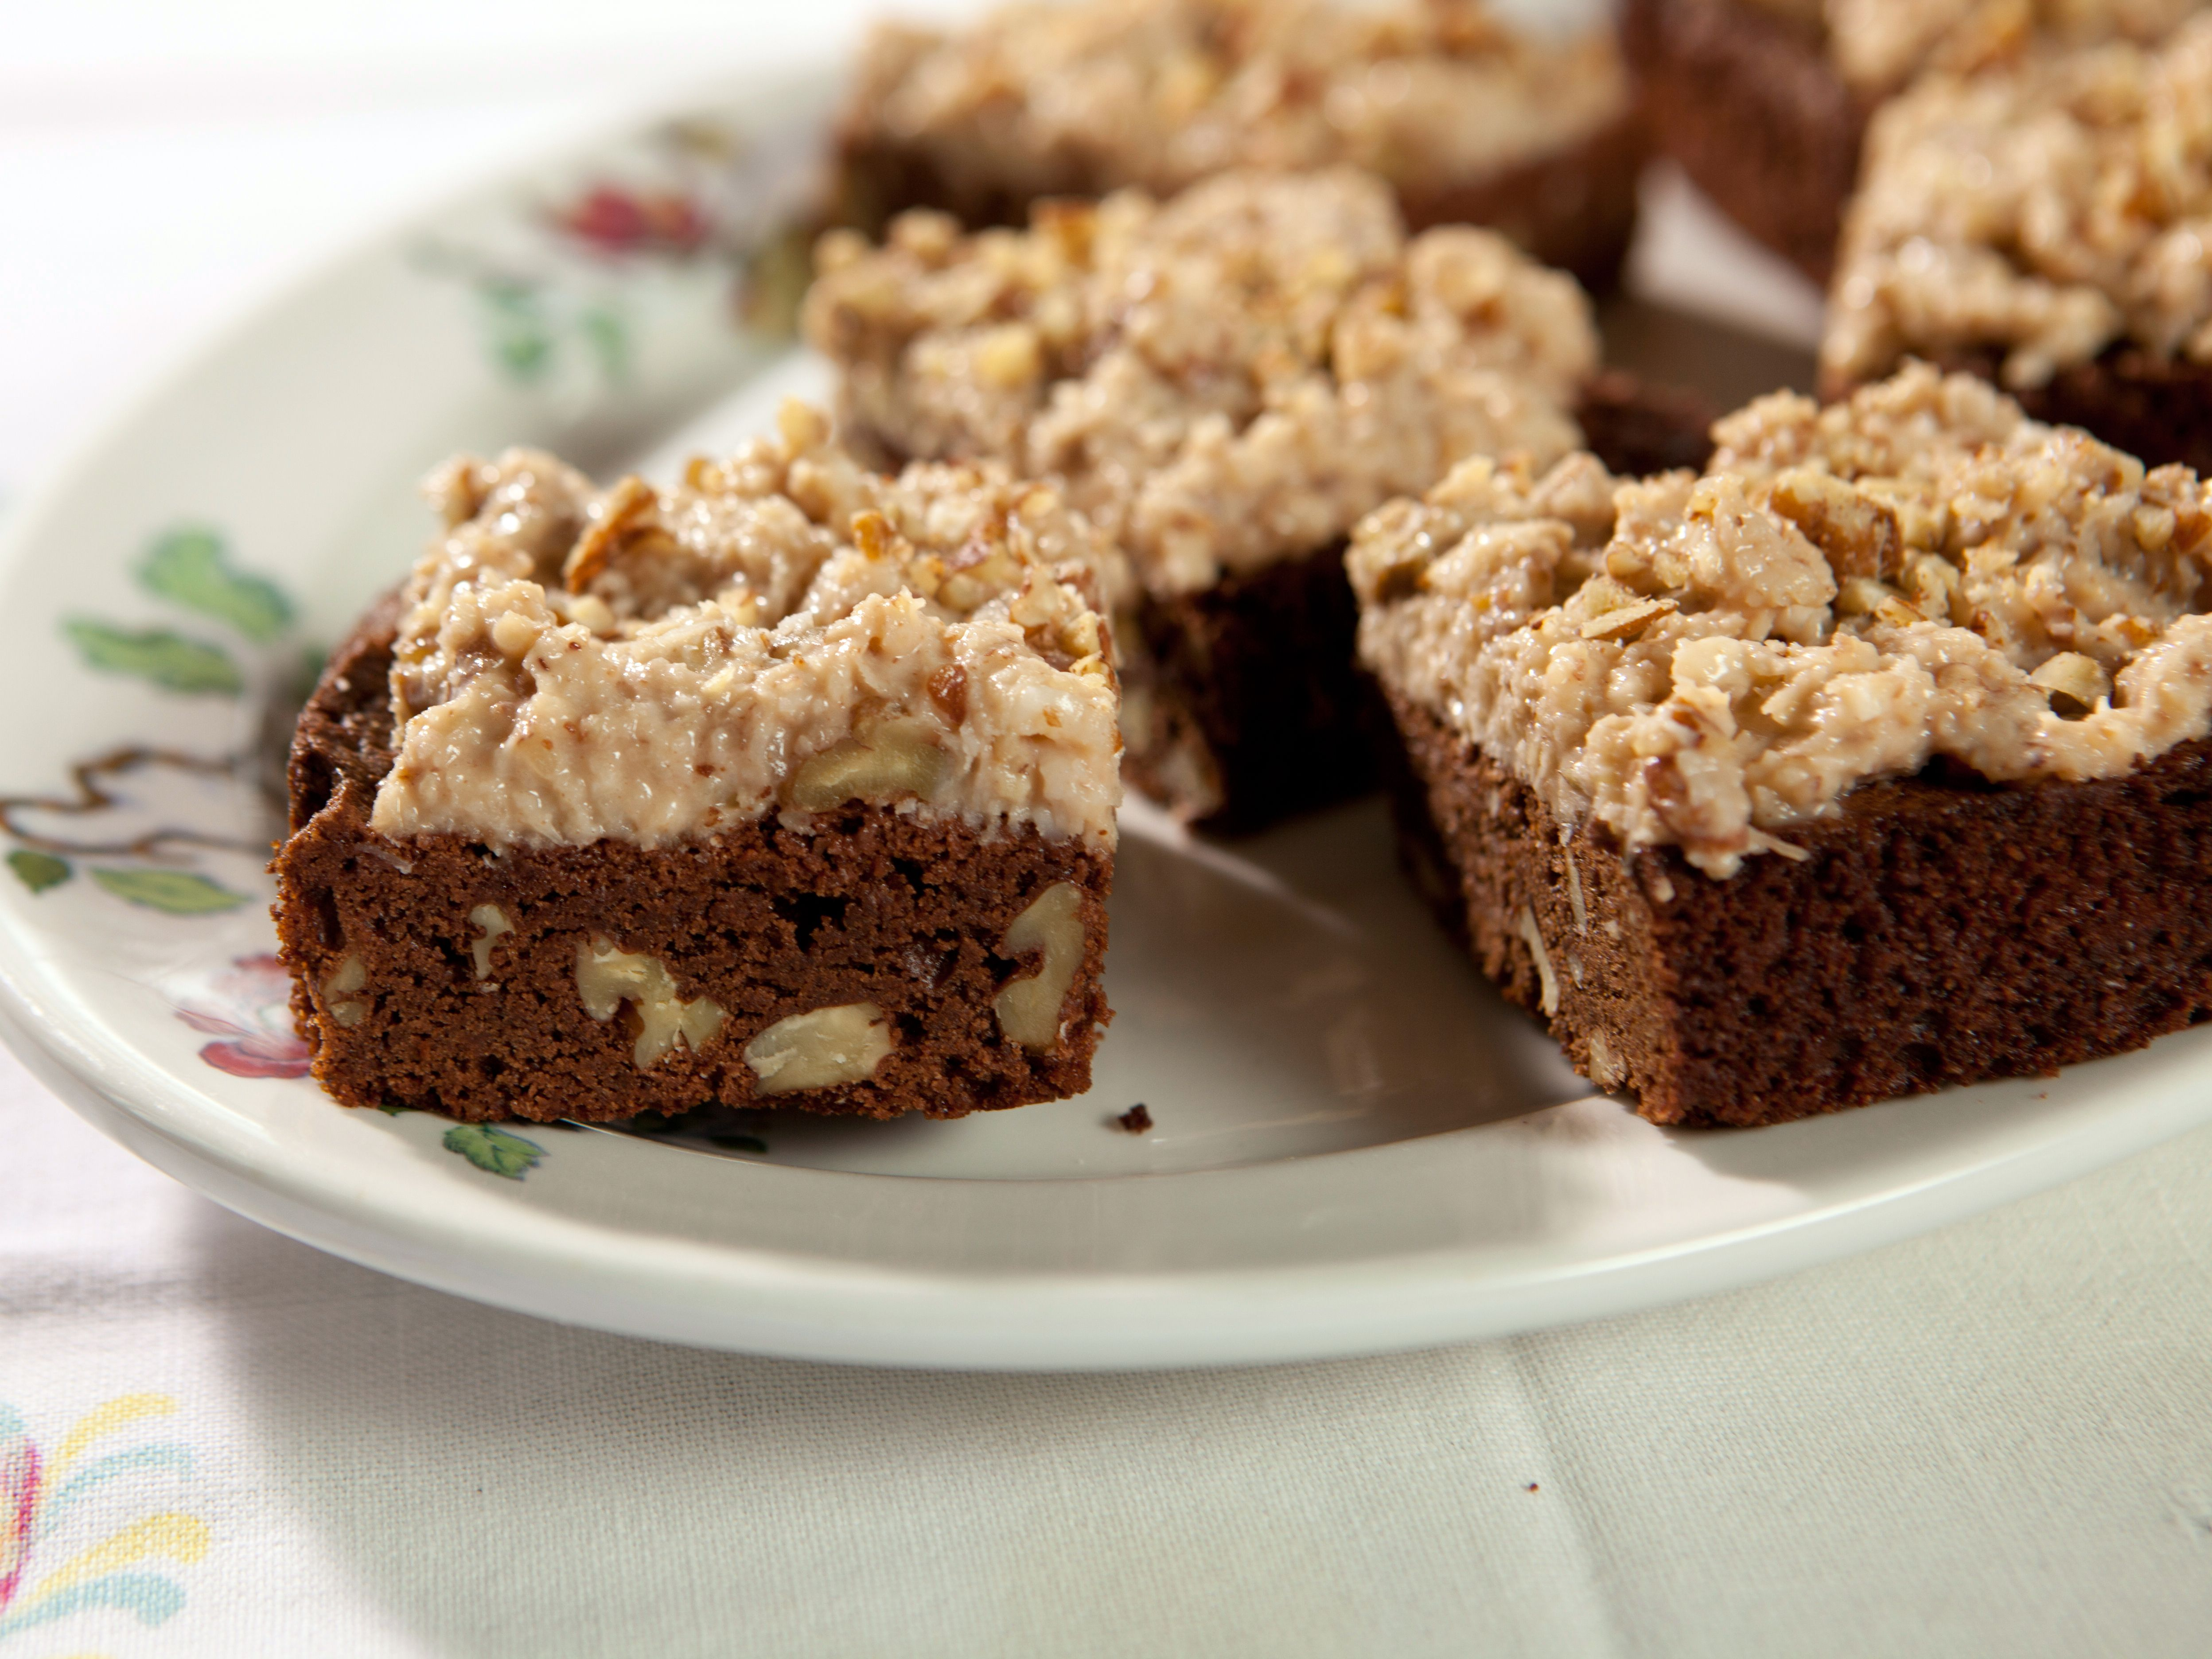 Trisha Yearwood S German Chocolate Cake With Butterscotch Frosting